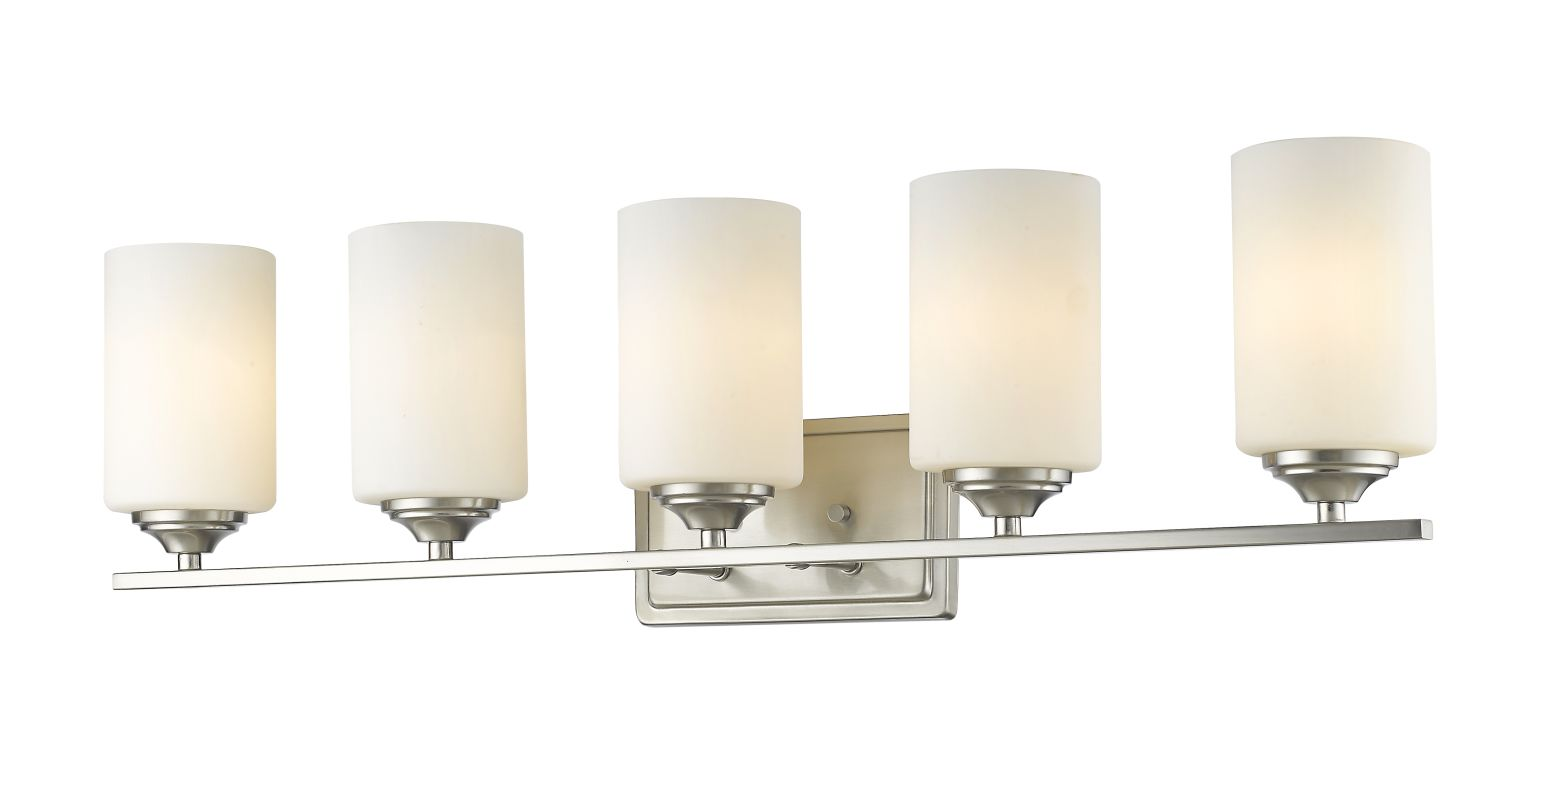 Z-Lite 435-5V Bordeaux 5 Light Vanity Light with Matte Opal Glass Sale $242.00 ITEM: bci2735567 ID#:435-5V-BN UPC: 685659050141 :